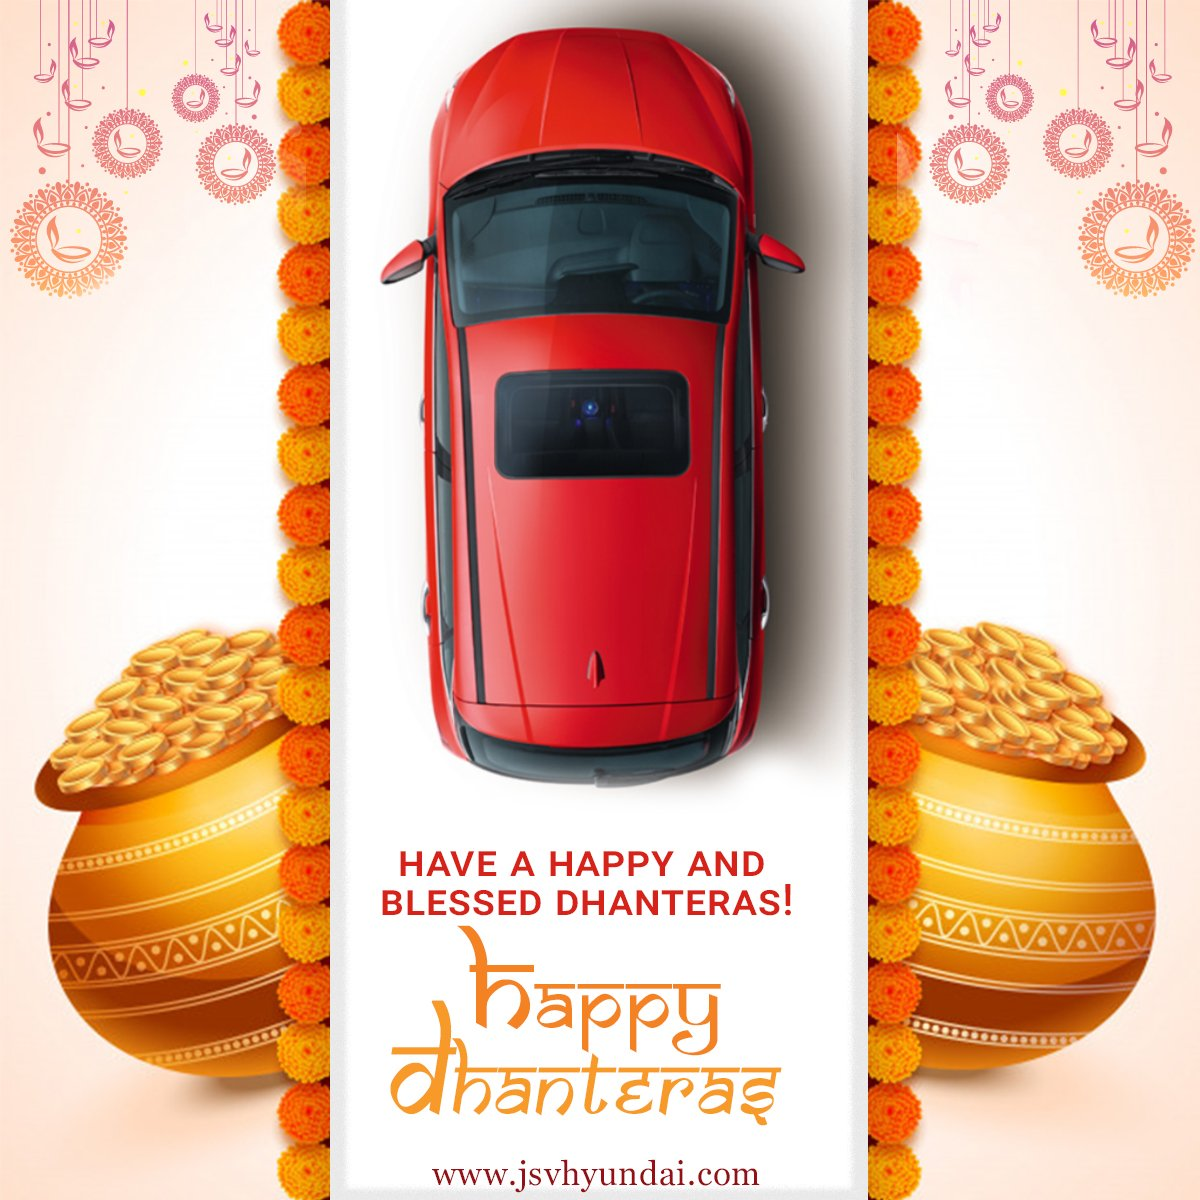 On the auspicious day of Dhantrayodashi,  here's wishing you  good health and wealth in abundance.  #HappyDhanteras #TheAllNewi20 #HappyNavratri #Lucknow #HyundaiCares #WePledgeToBeSafe #StayHome #StaySafe #JSVHyundaiShowroom #Grandi10NIOS  #Elitei20 #NewCreta2020 #Automobile https://t.co/nZcLWq3bGj